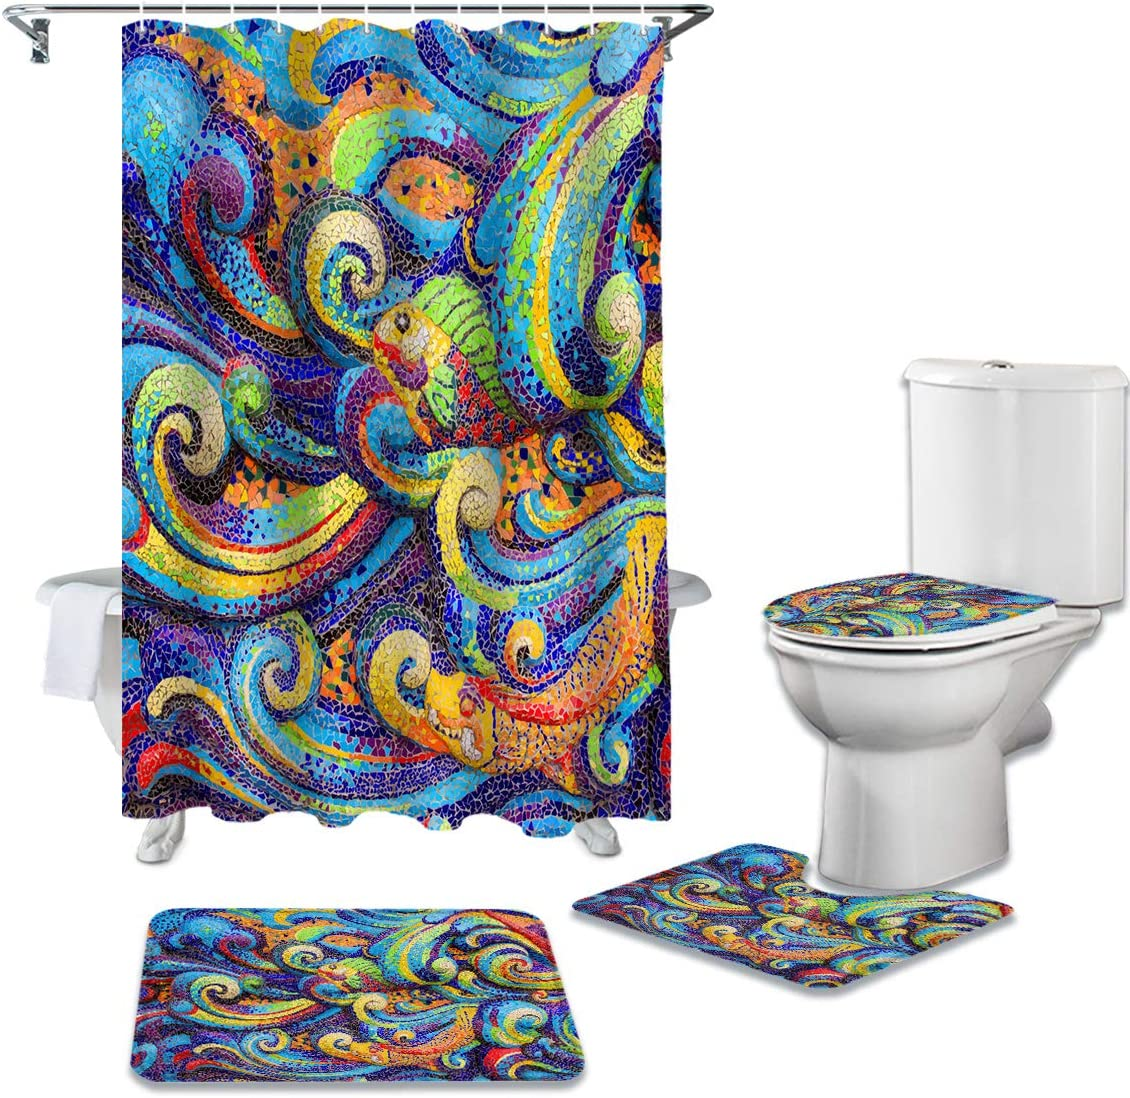 16PCS Shower Curatin Set Ultra-Cheap Deals with Non-Slip Large Mat Bath Max 82% OFF Toi Small